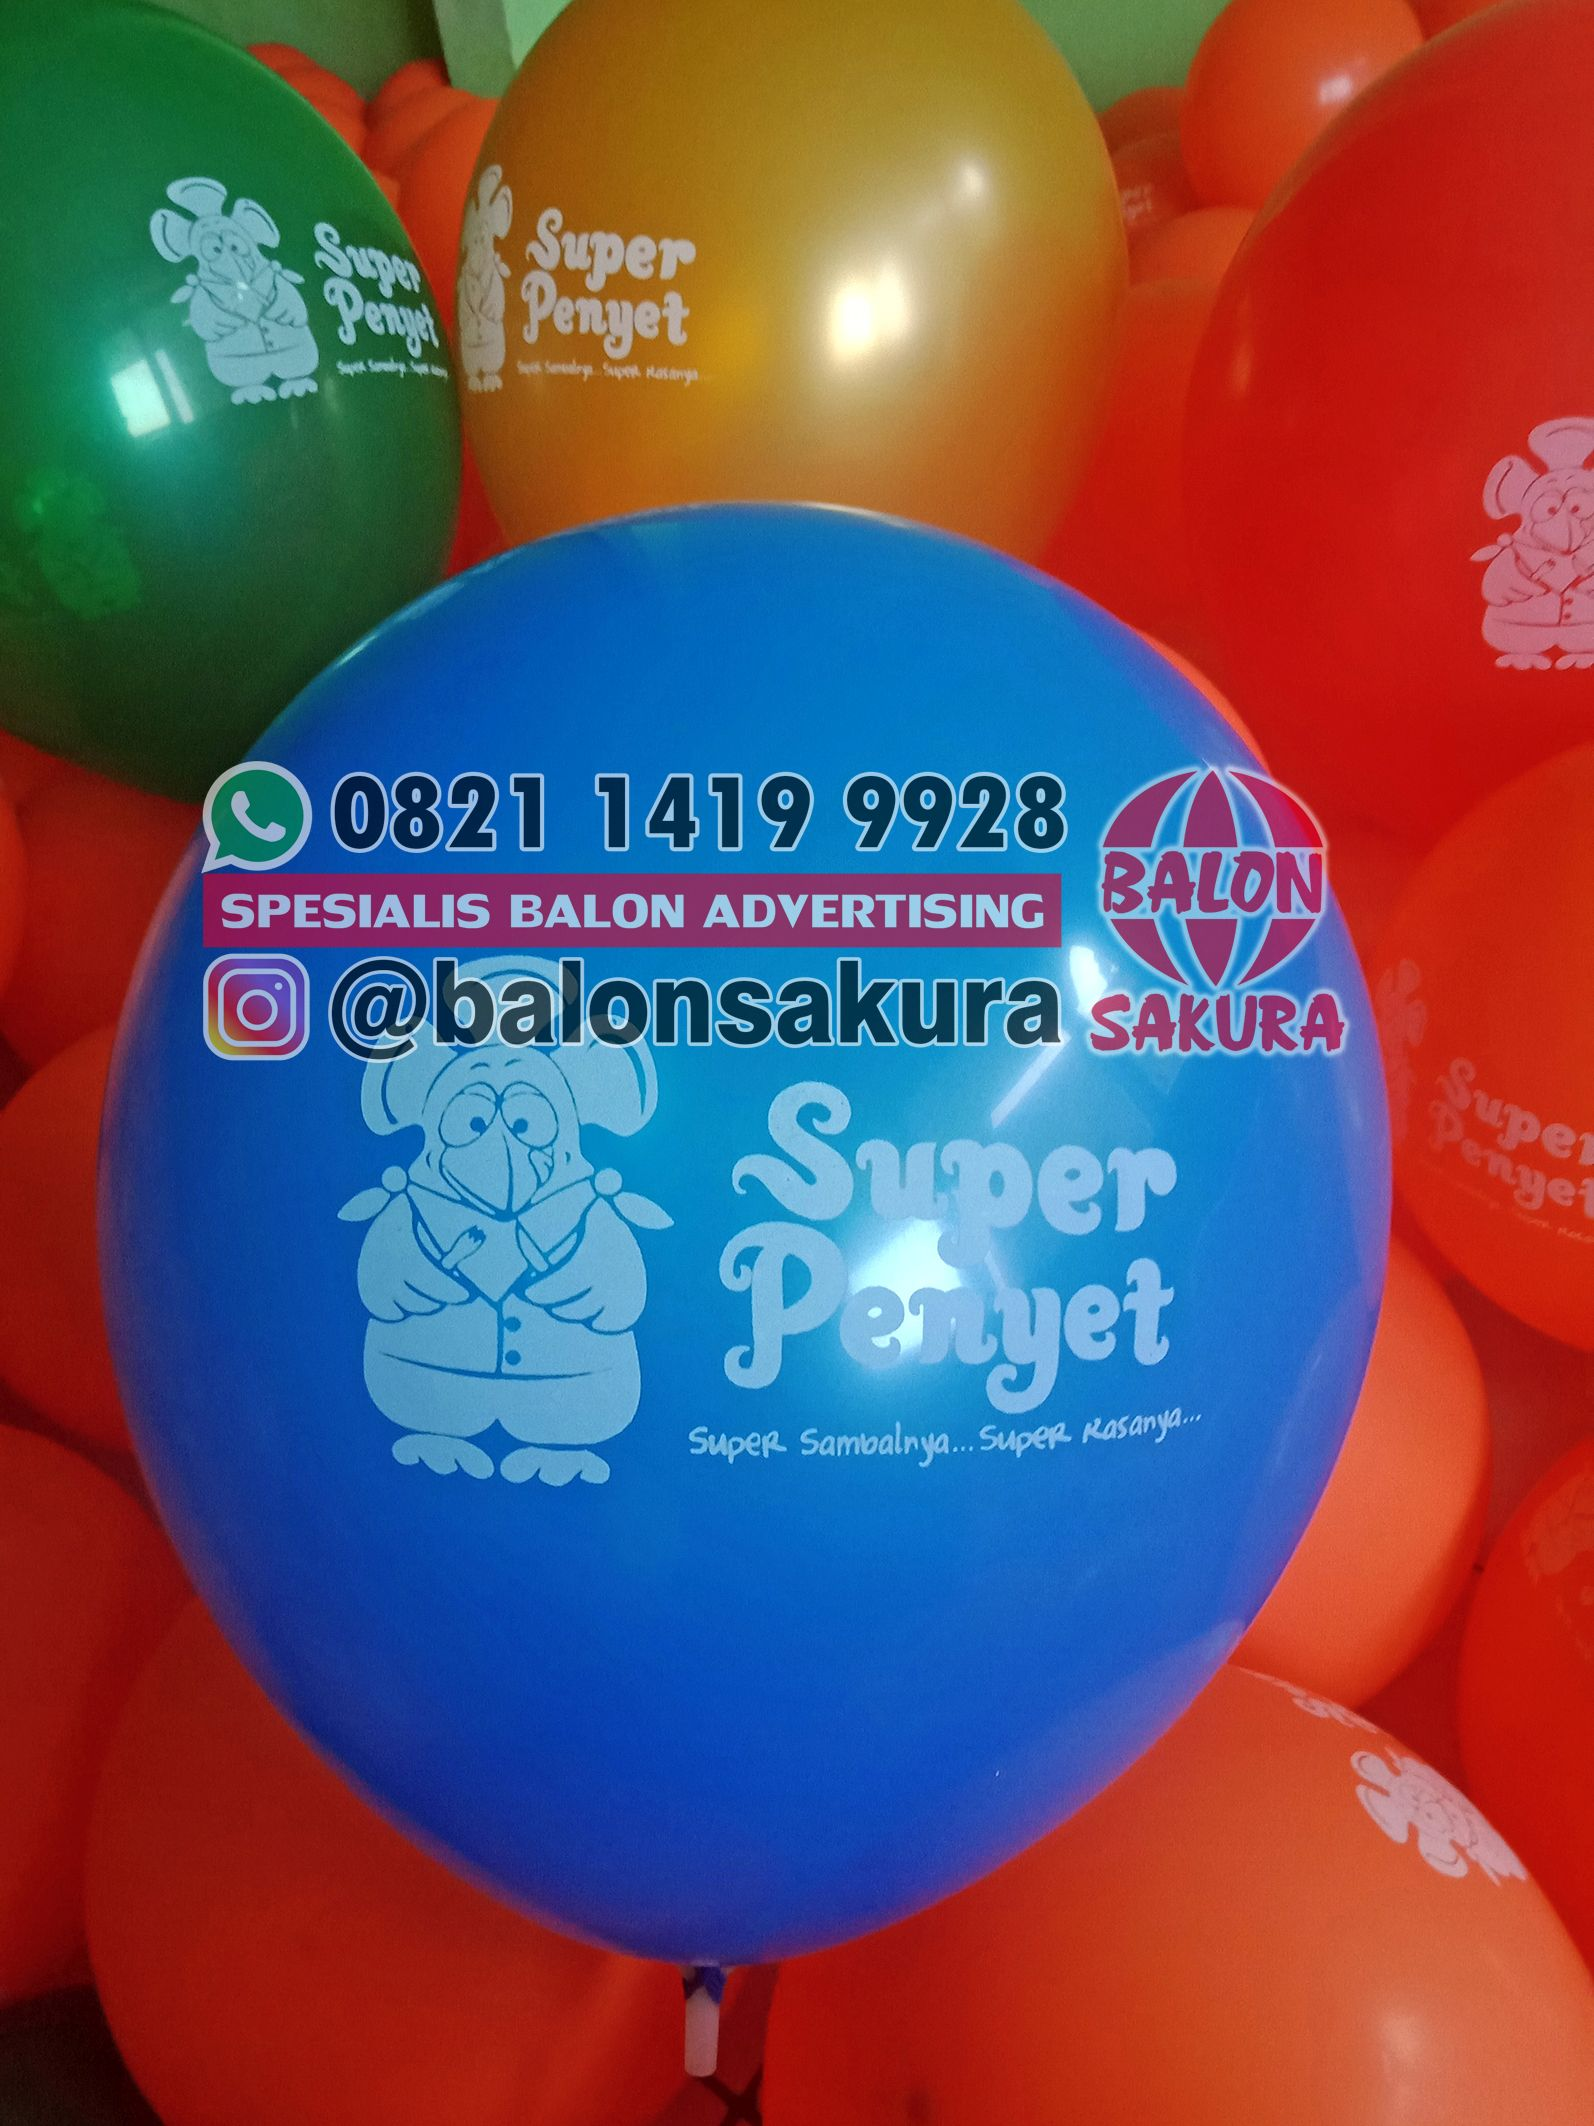 balon sablon sp